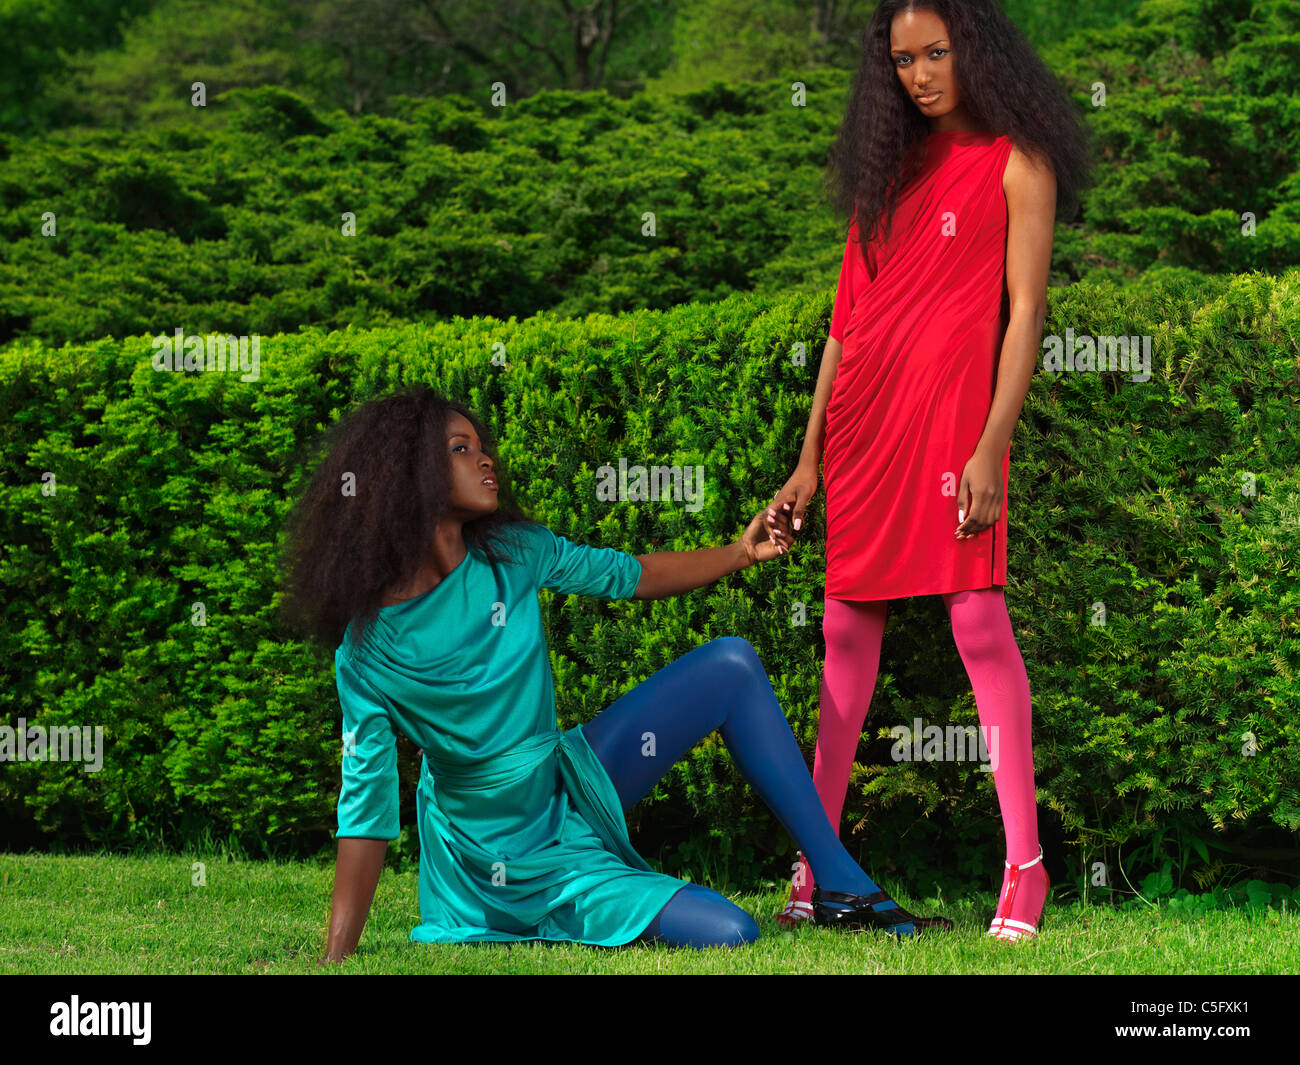 Two beautiful young women wearing bright colorful dressed in a green park Stock Photo